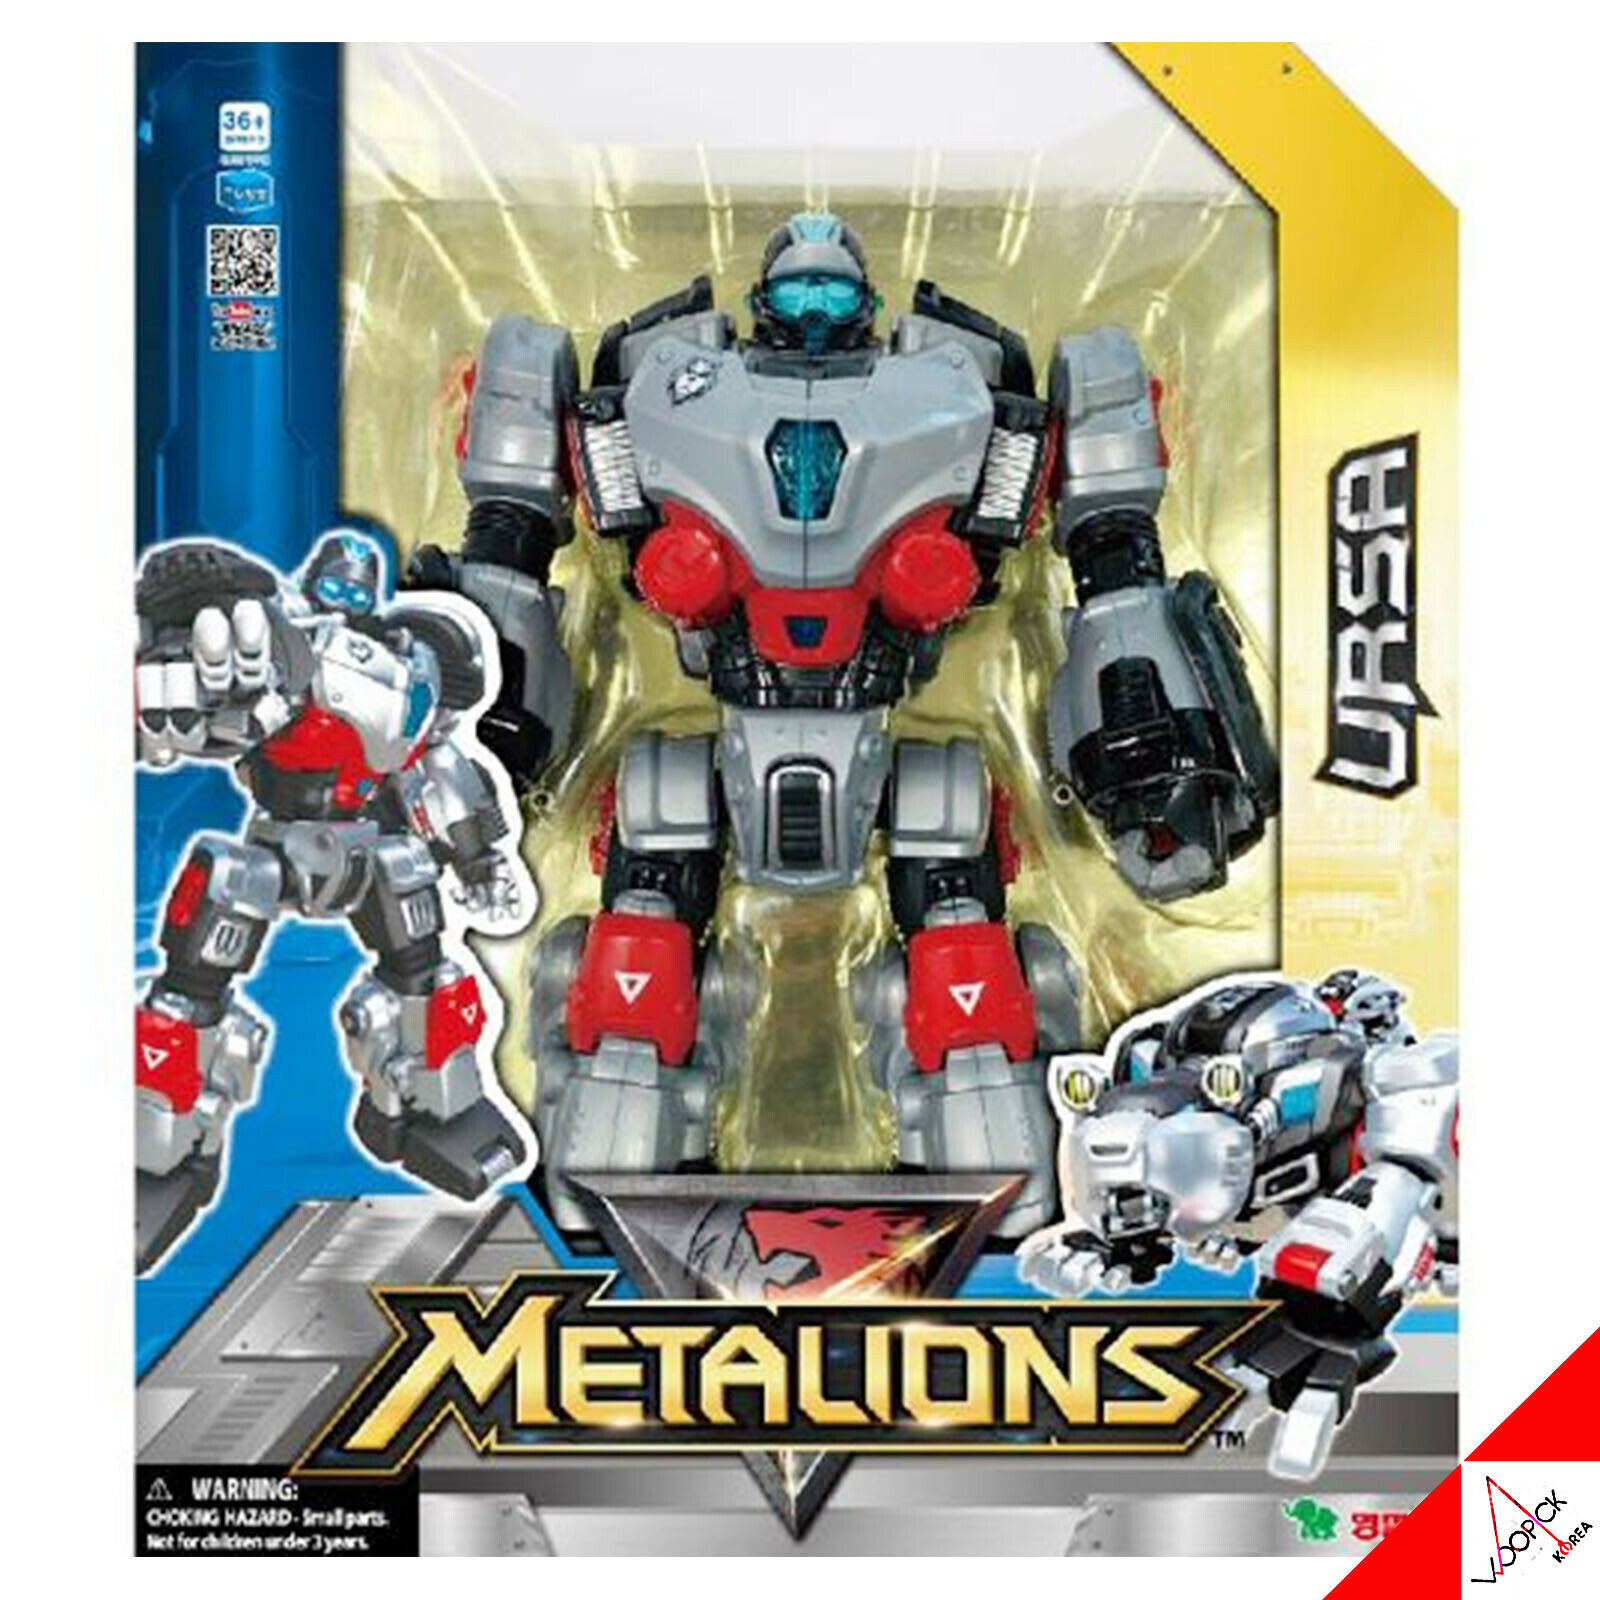 METALIONS URSA(Big Dimensione) Intergration Transformer Animal Bear Robot Figure Toy